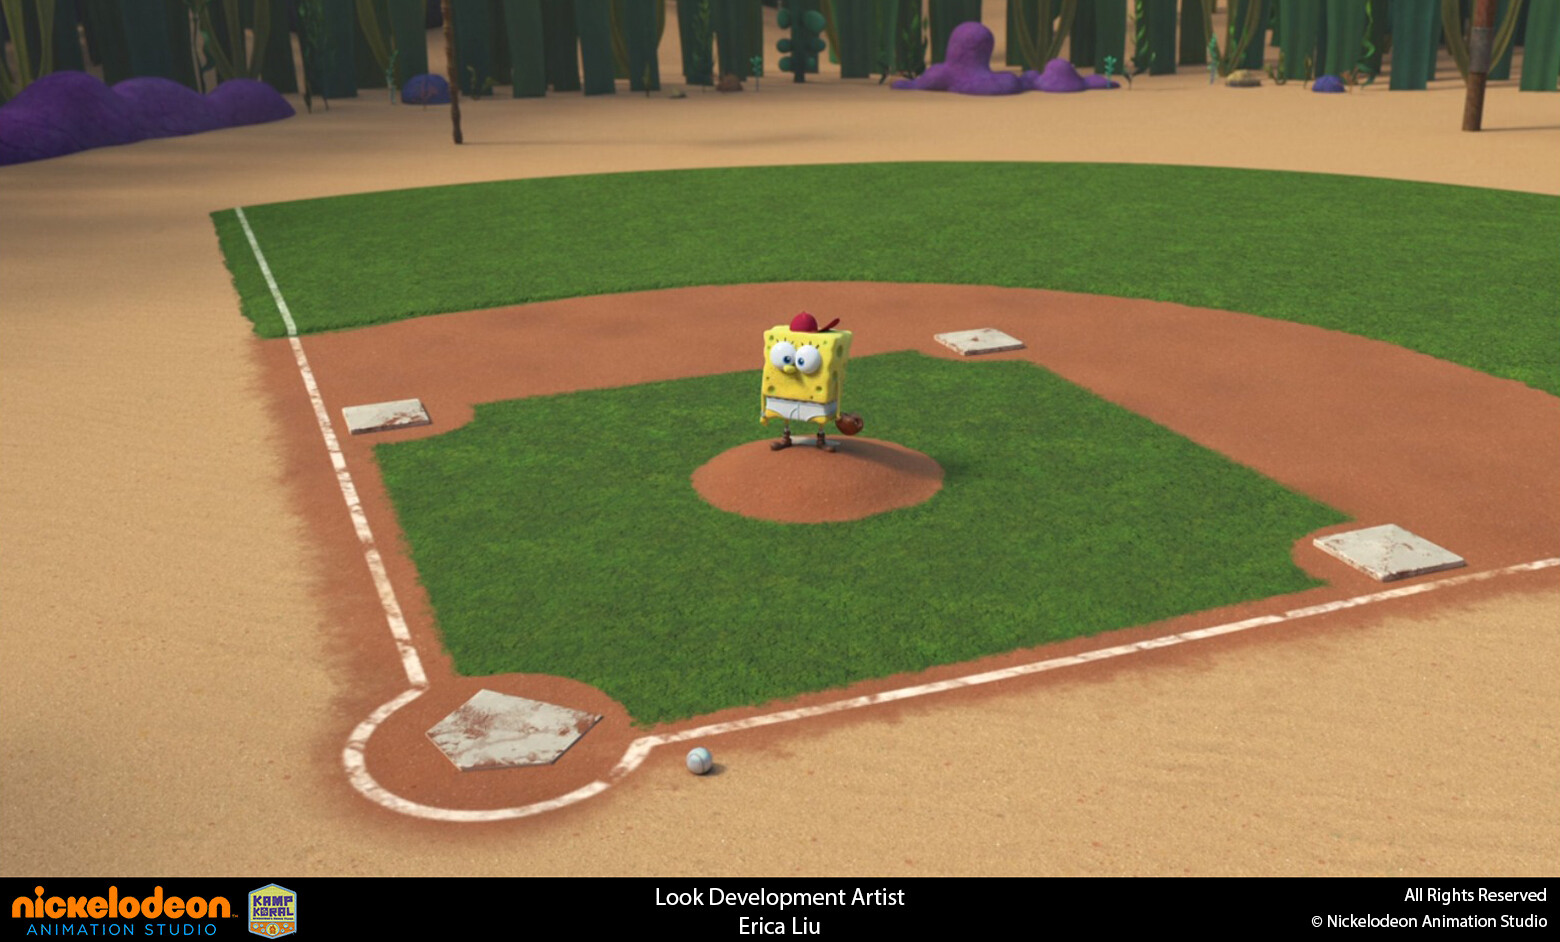 Responsible for look development and texture of Baseball field set